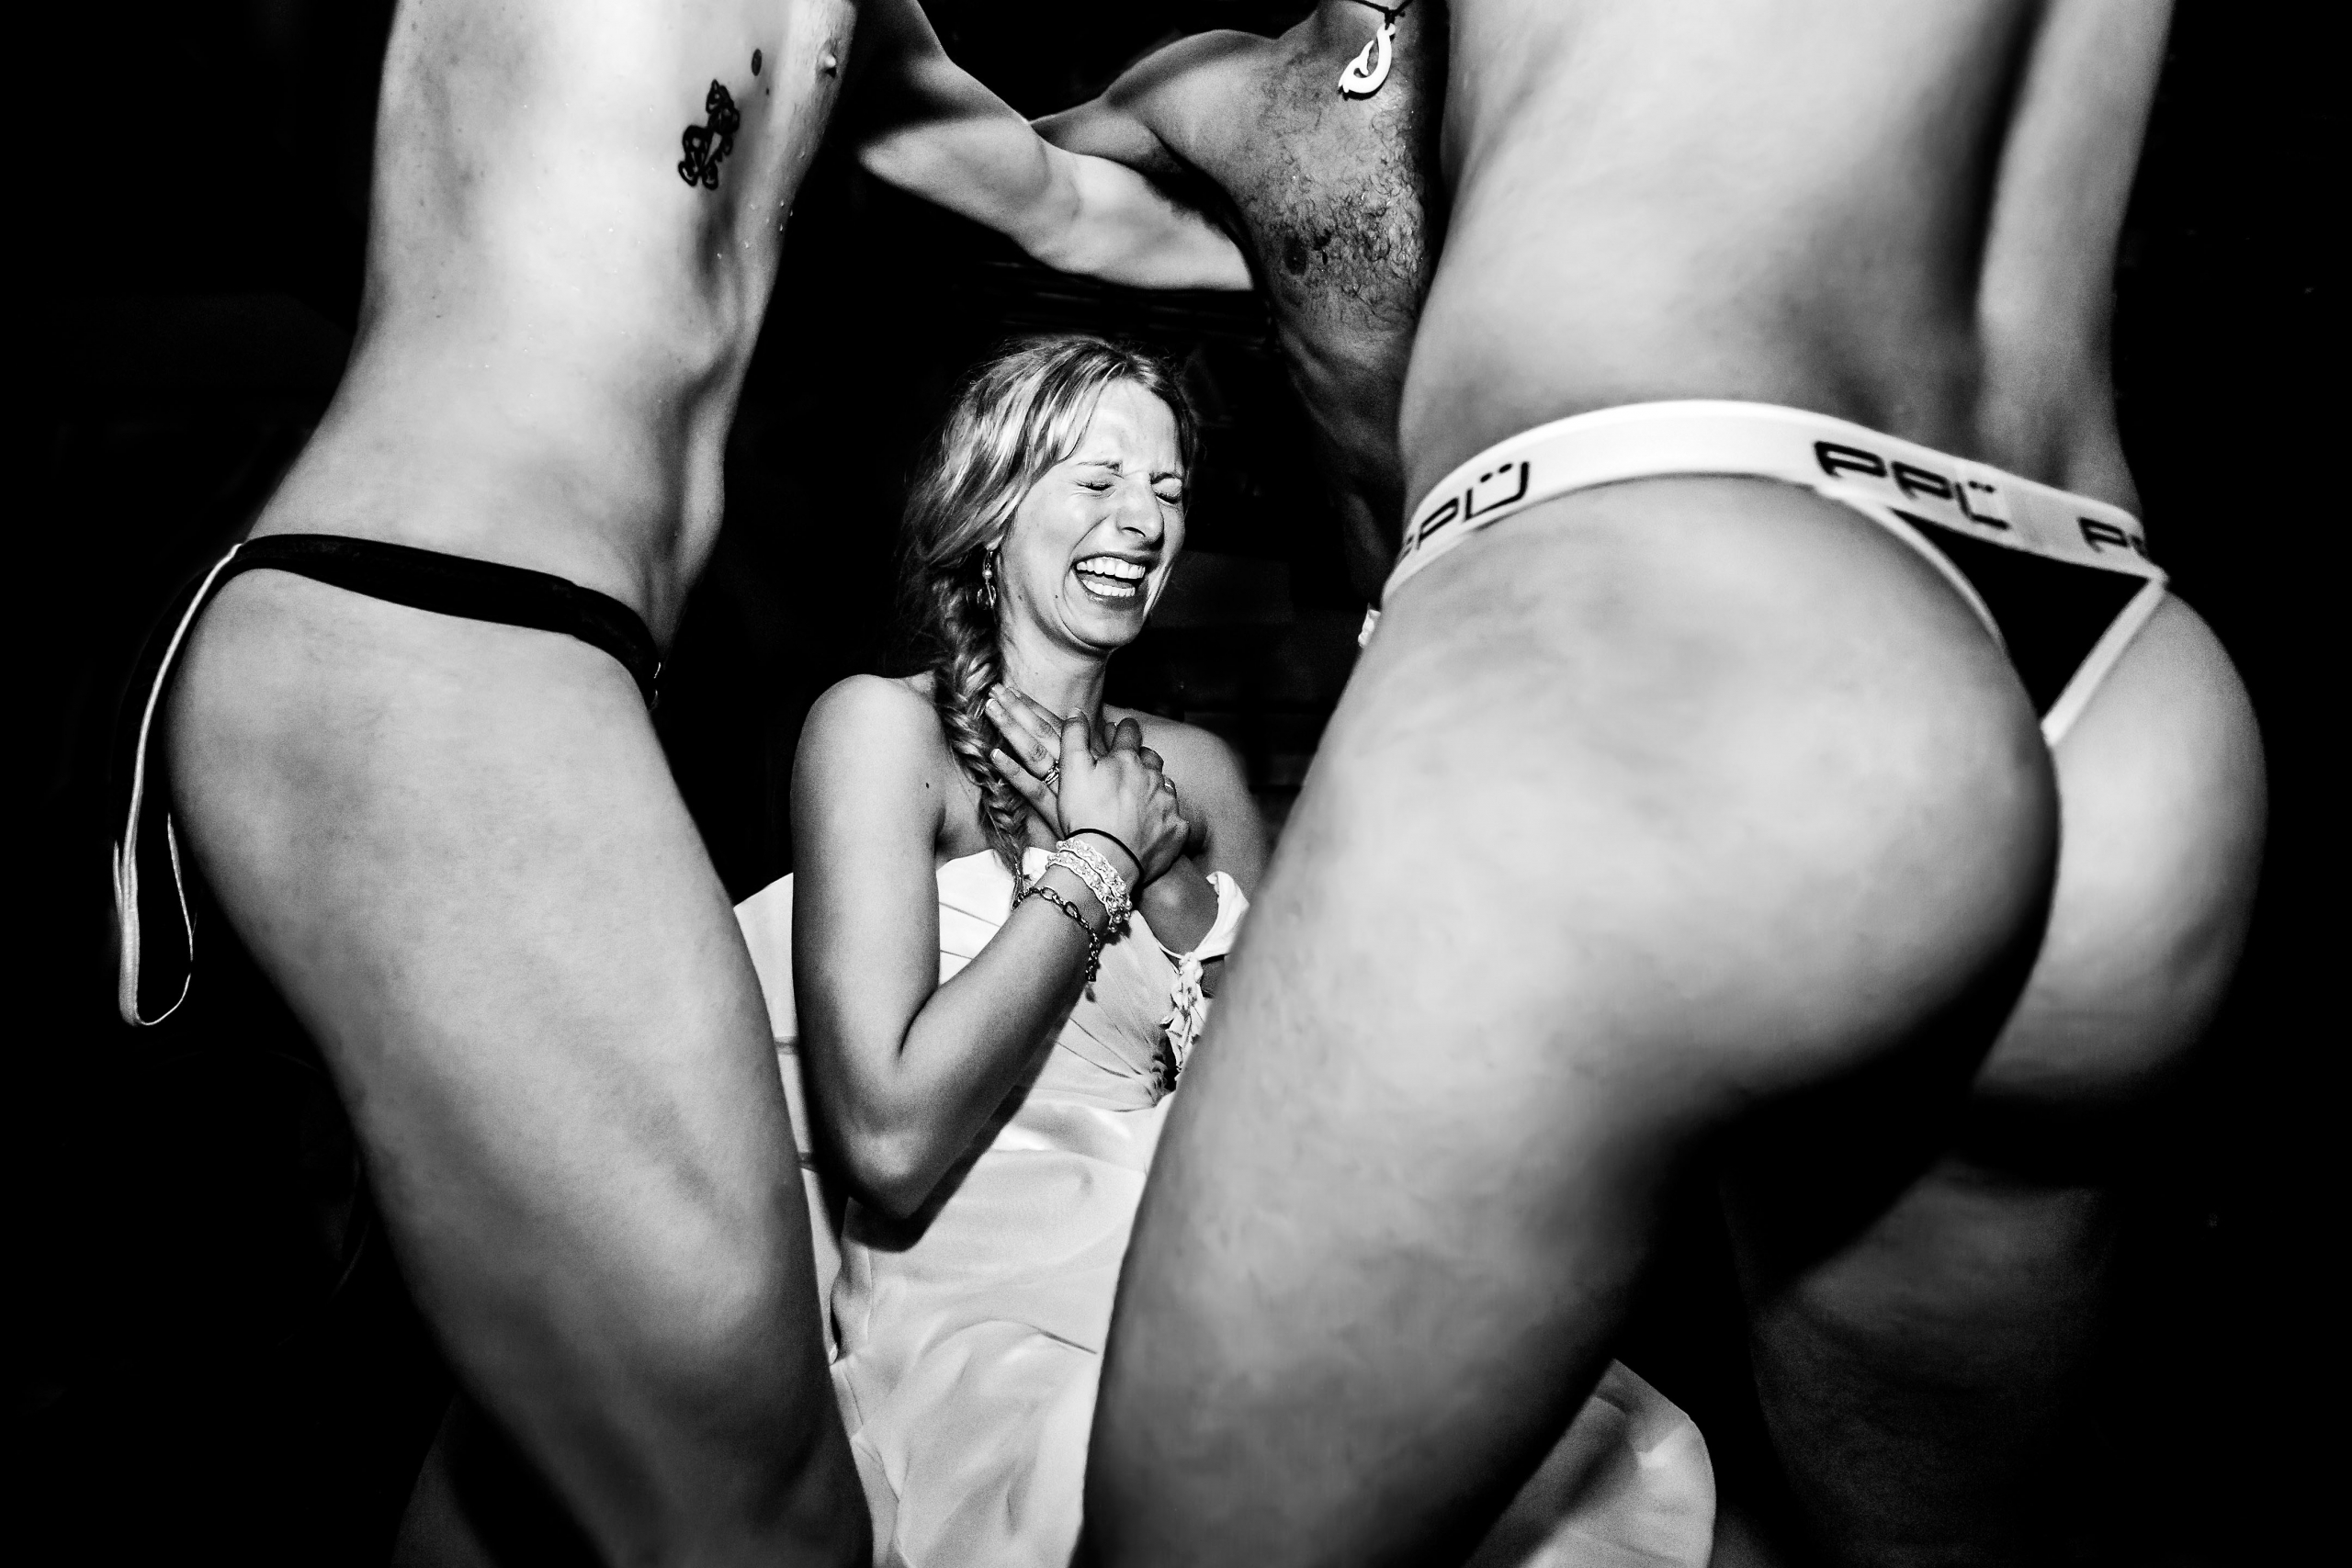 Groomsmen in underwear giving bride strip dance